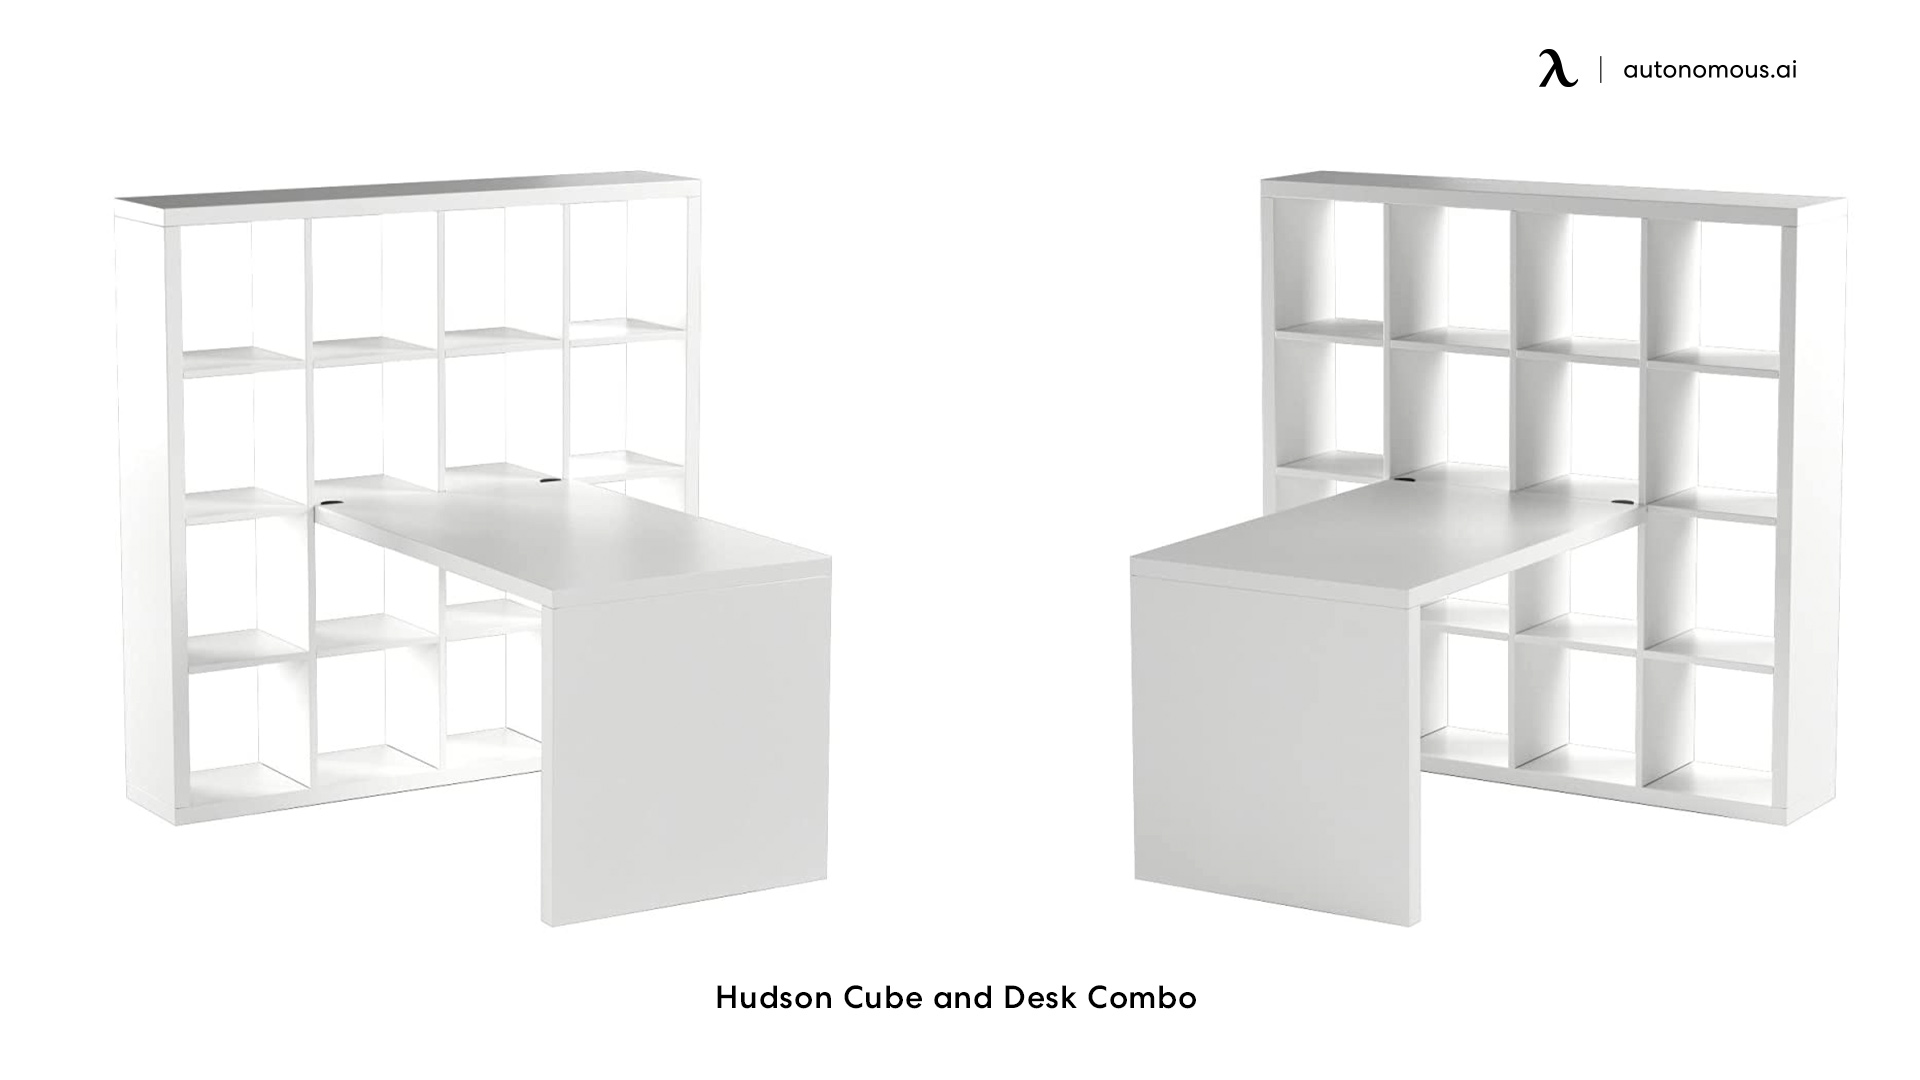 Hudson Cube and Desk Combo